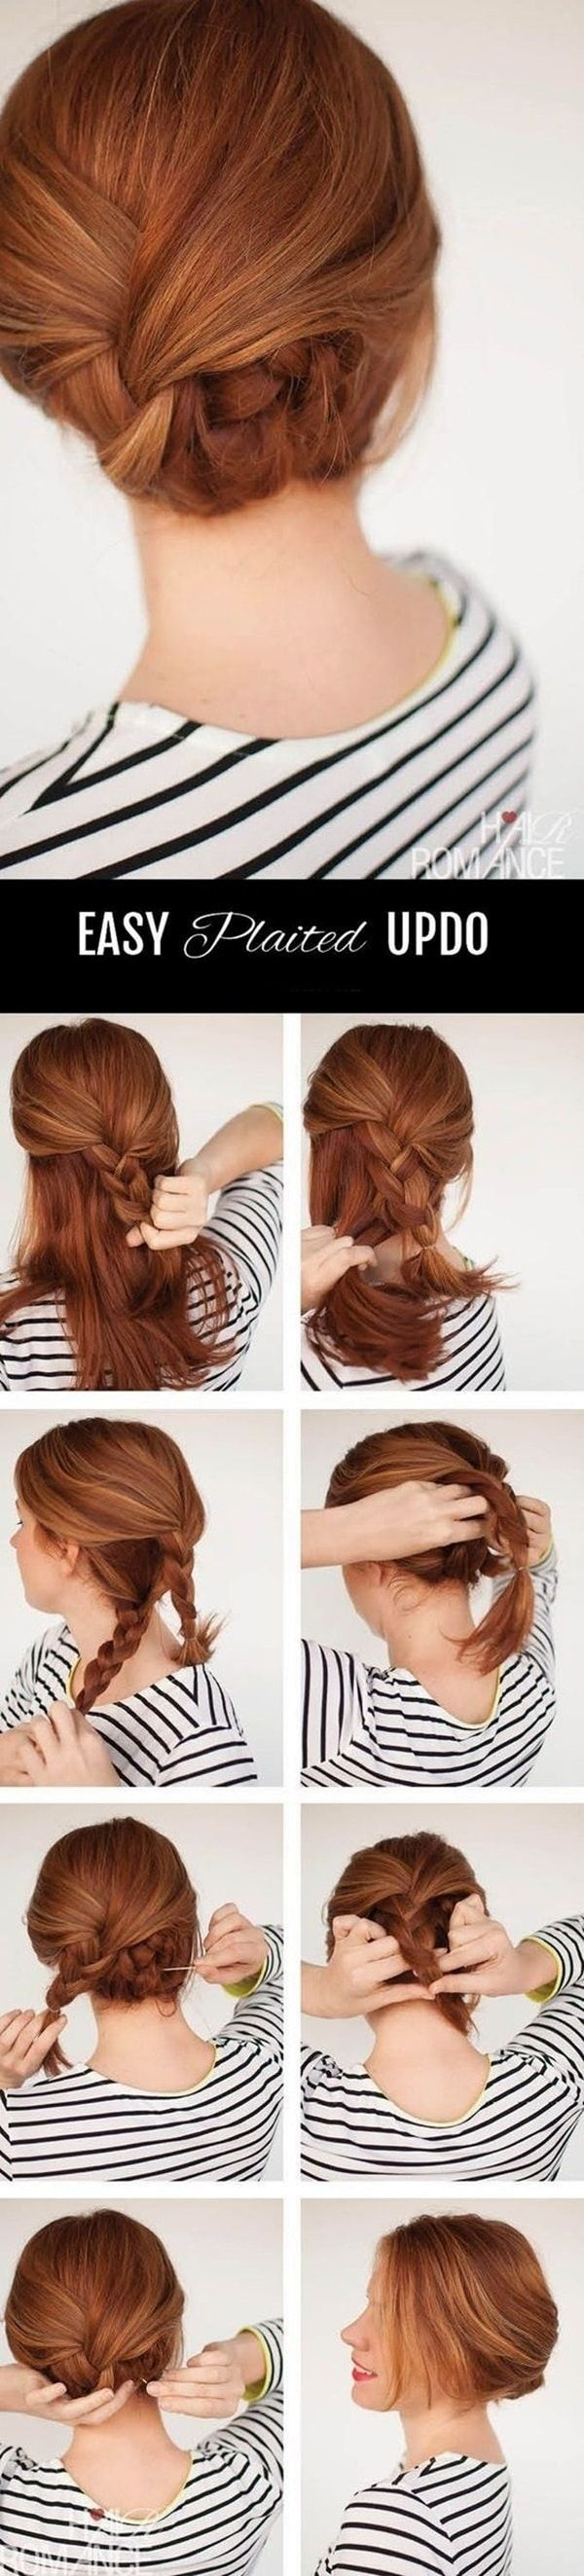 Not an office woman but love the simple and cute hair! Saving for later……